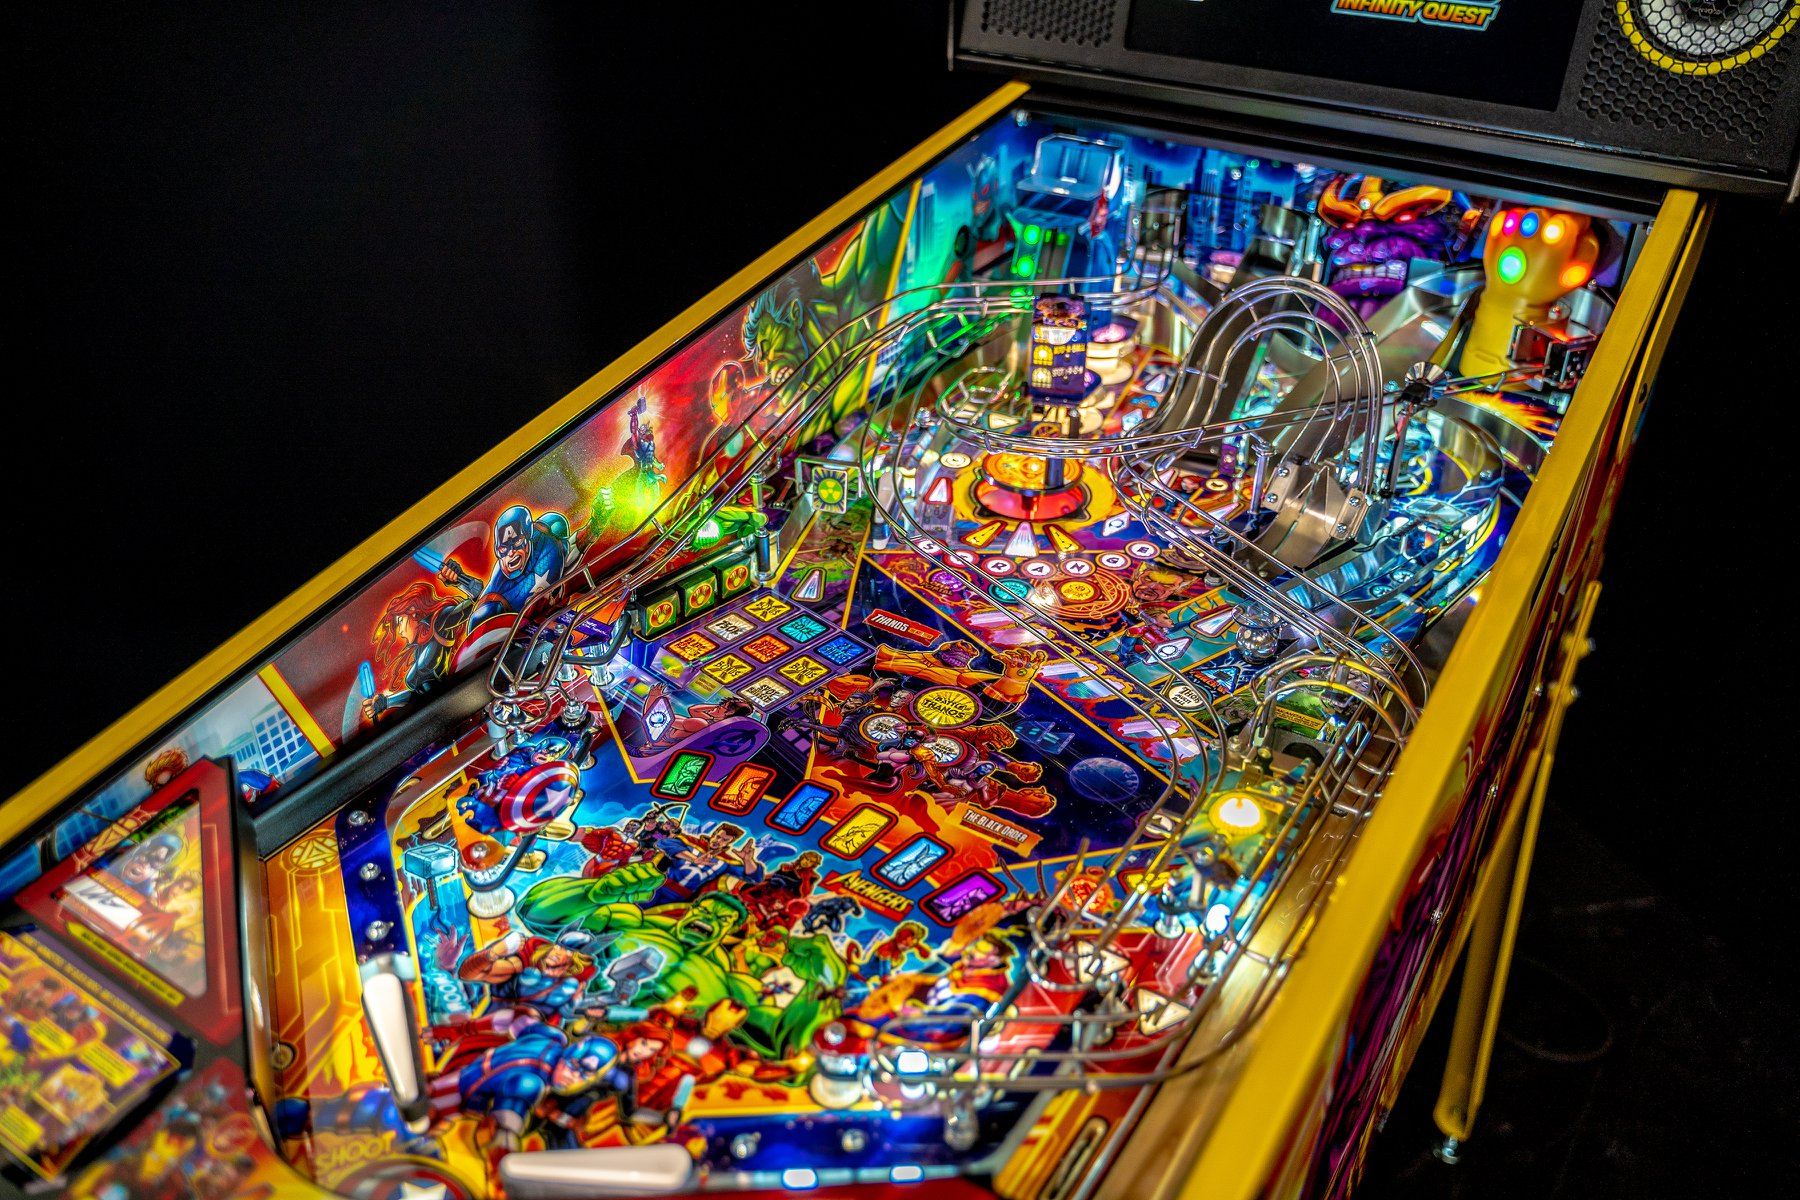 First Takes: Avengers: Infinity Quest Pinball by Stern Pinball